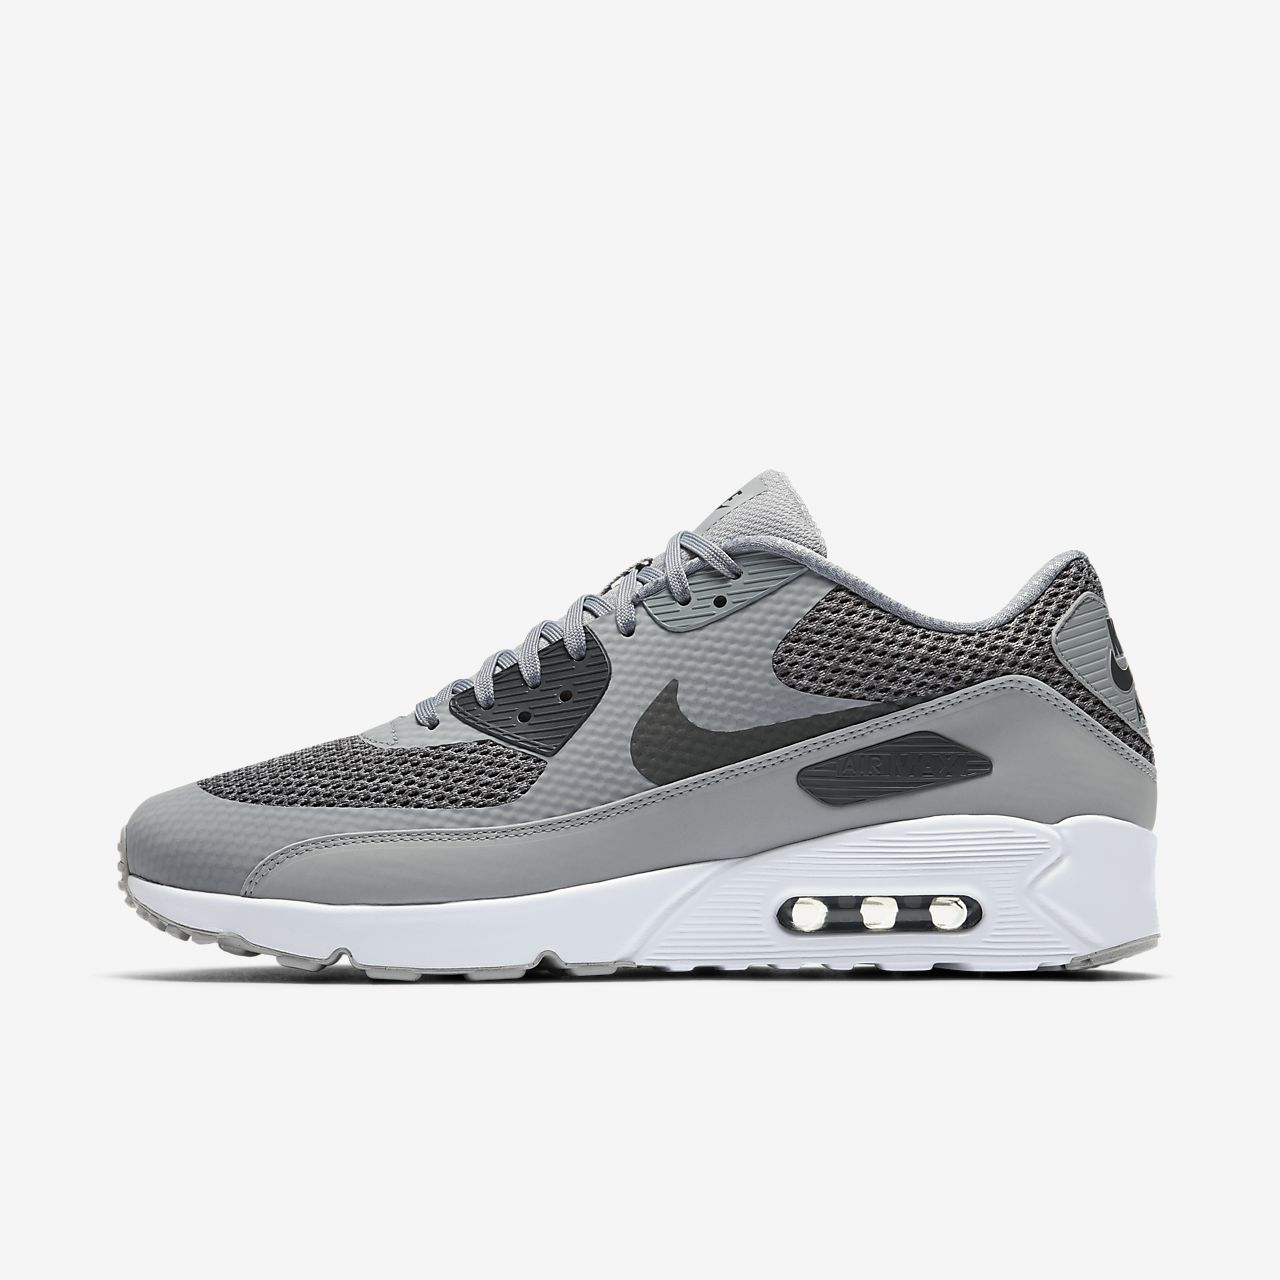 nike air max 90 ultra 2.0 - men shoes